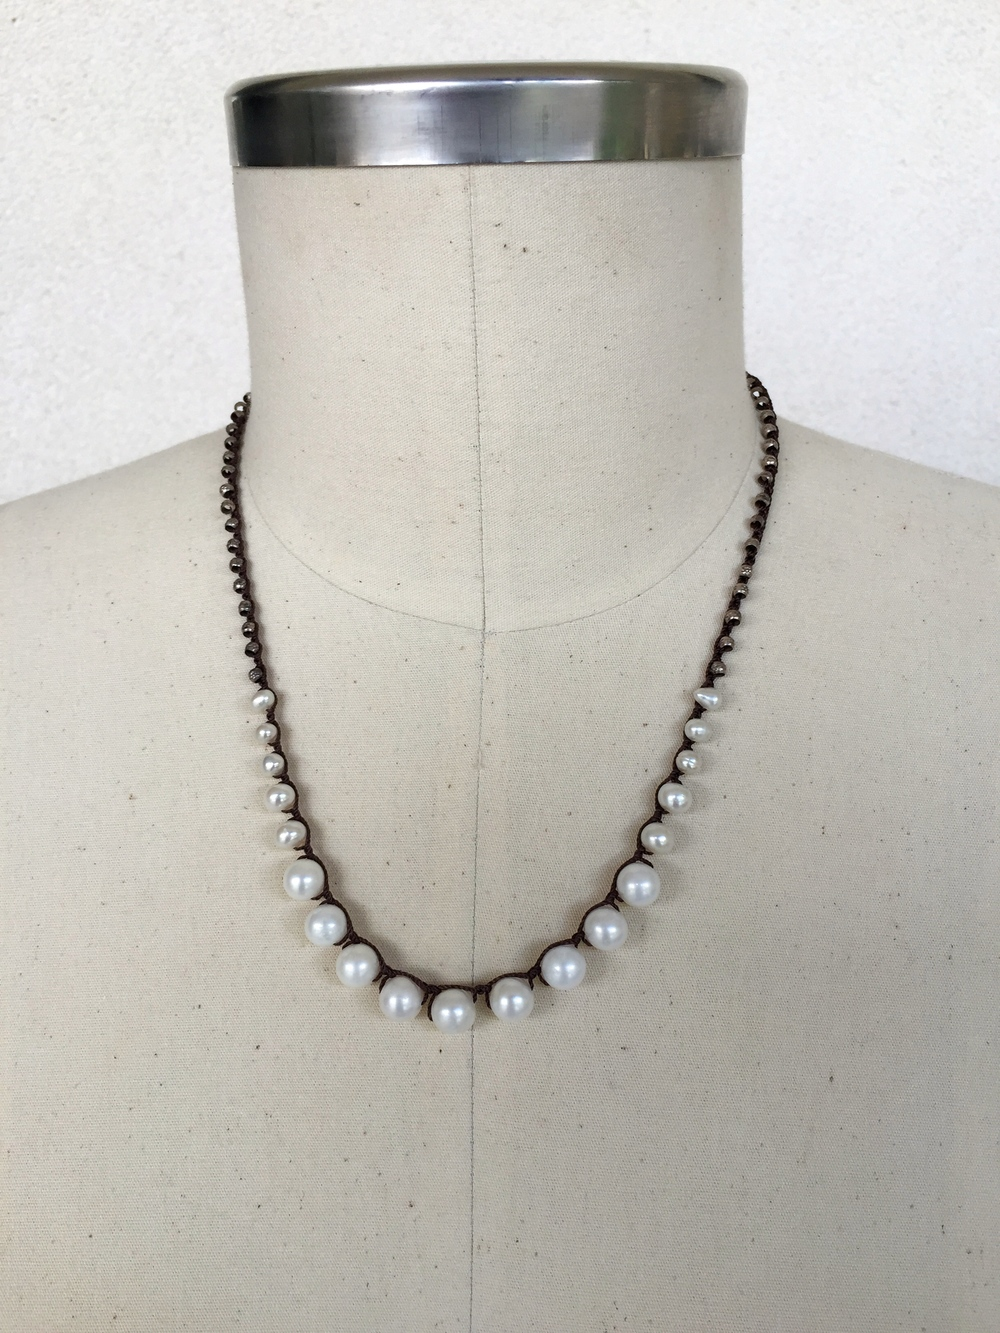 Graduated Sterling Silver and White Pearl Choker